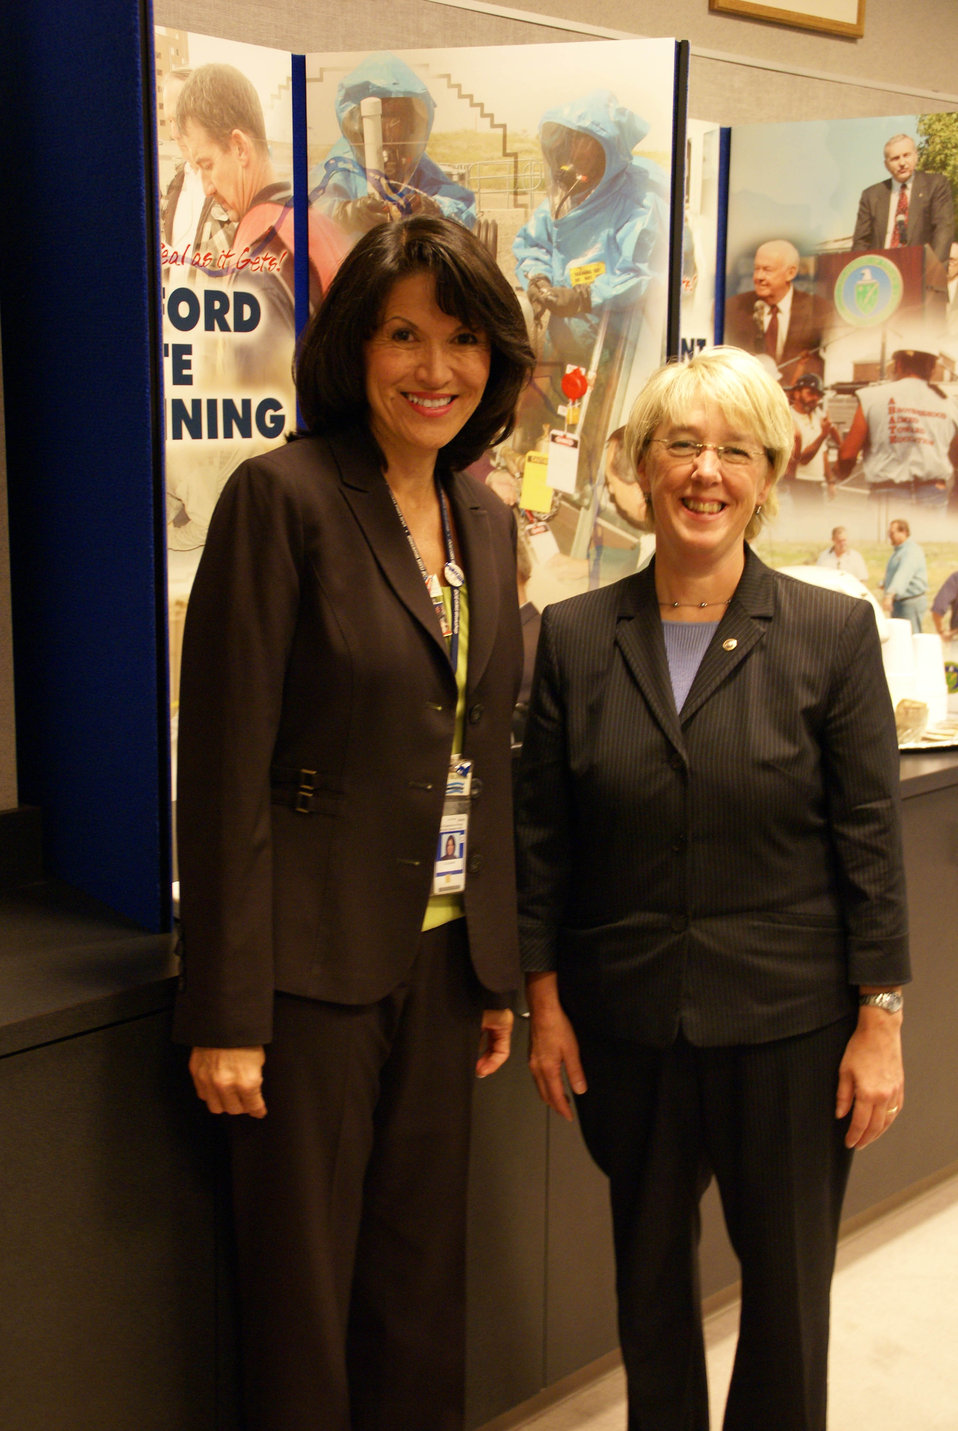 Former DOE ORP Manager Shirley Olinger with WA Senator Patty Murry 2008